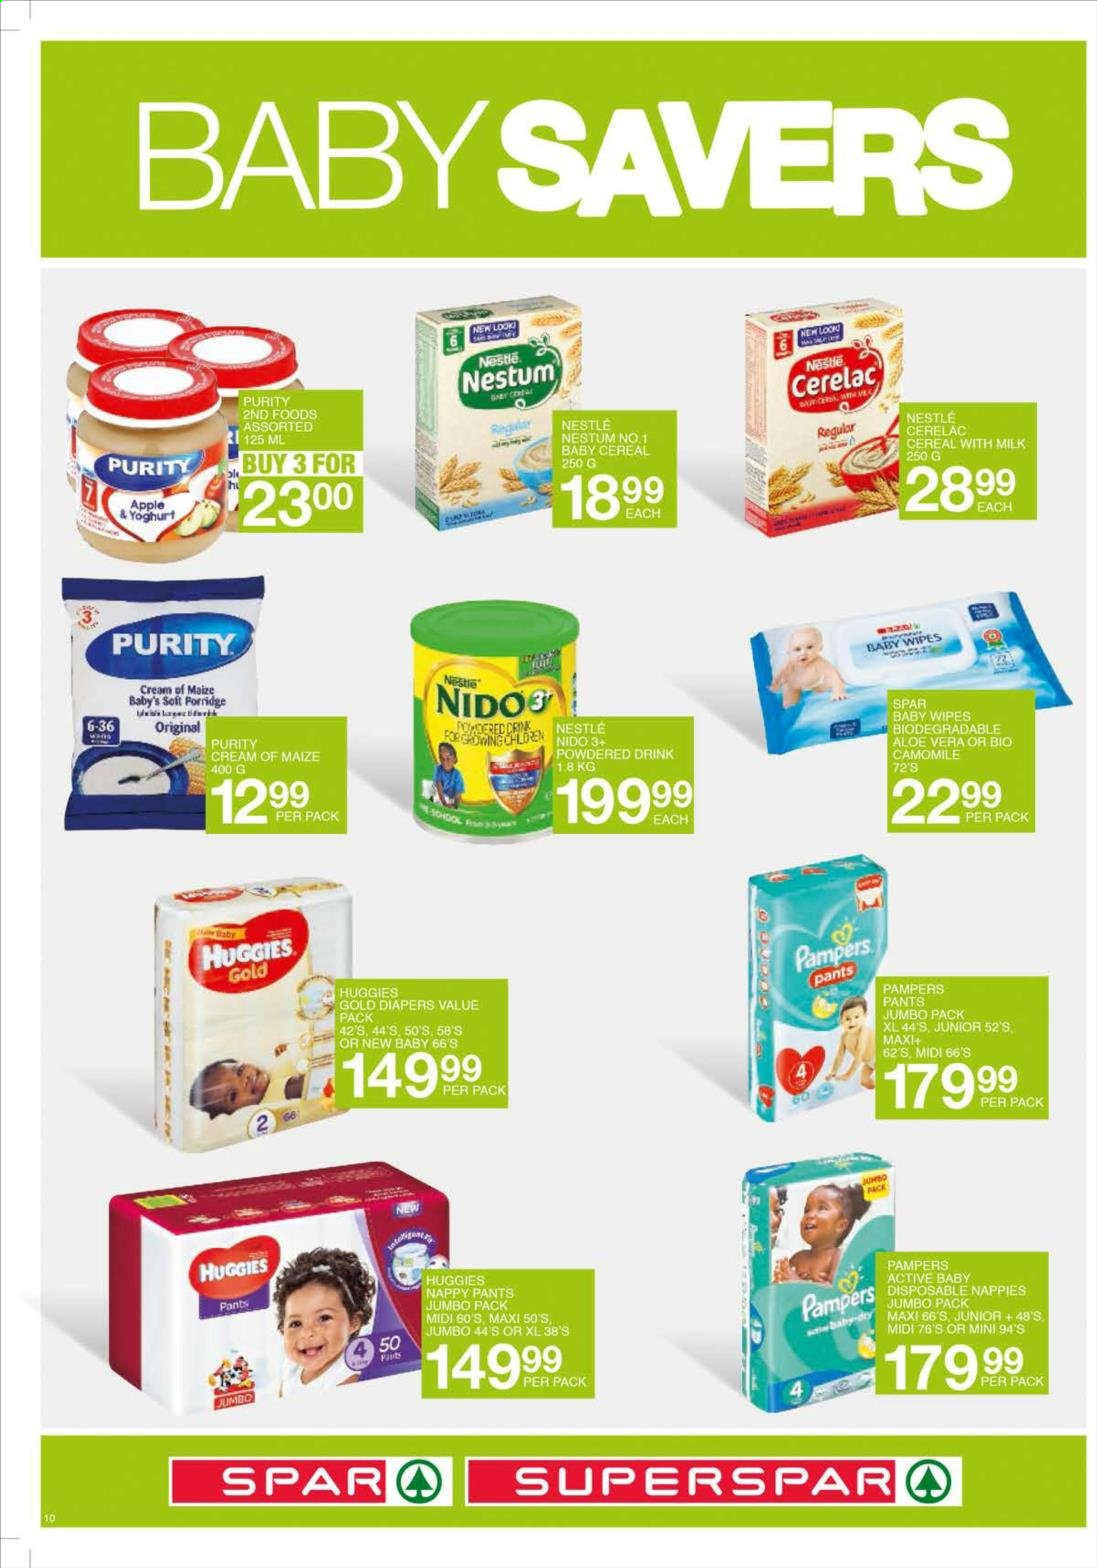 SPAR catalogue  - 08.27.2019 - 09.09.2019. Page 10.